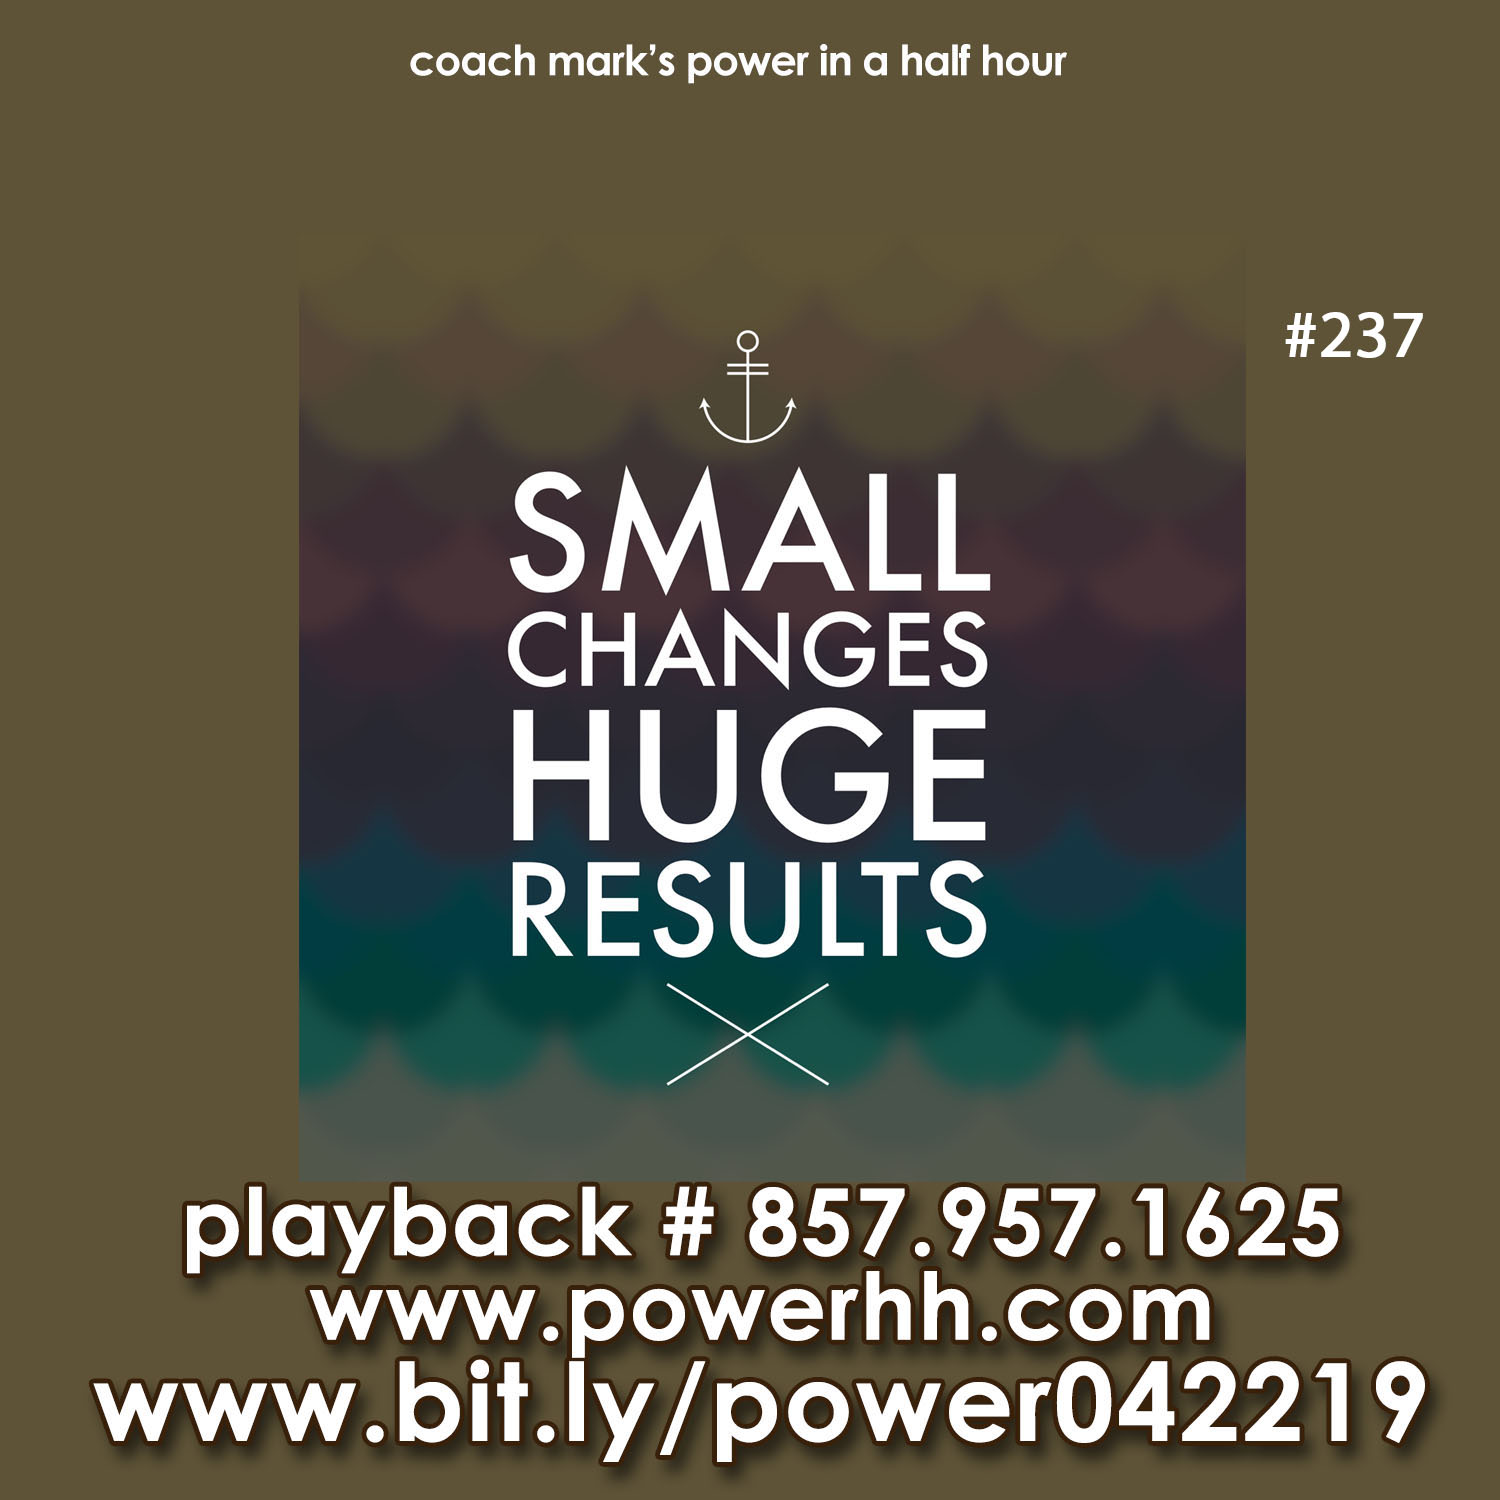 power replay 042219